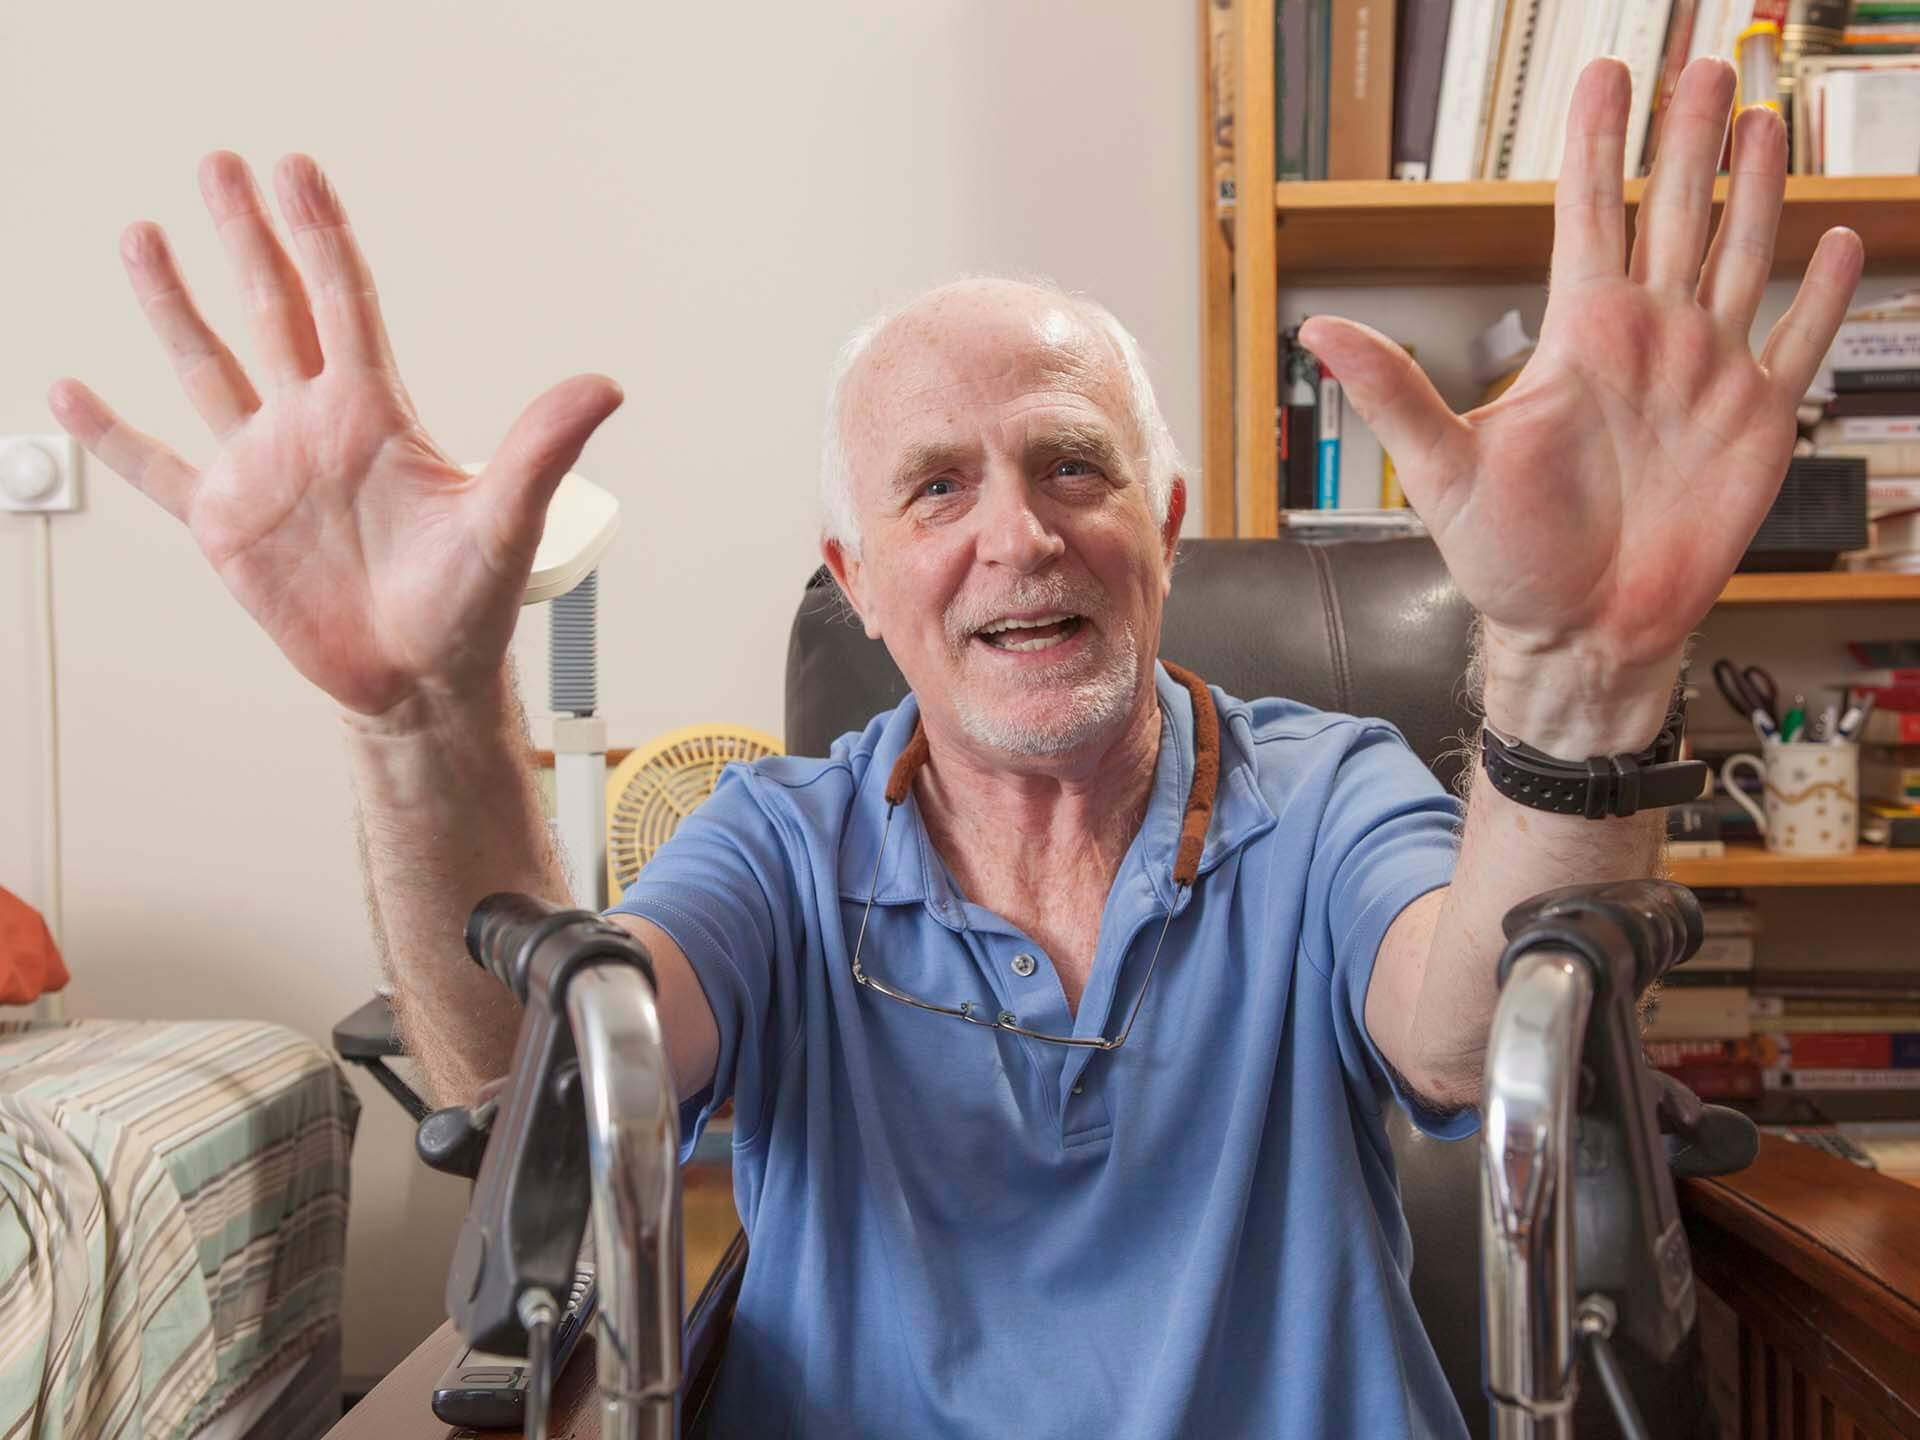 A smiling elderly man sits in front of his walker with his hands in the air.